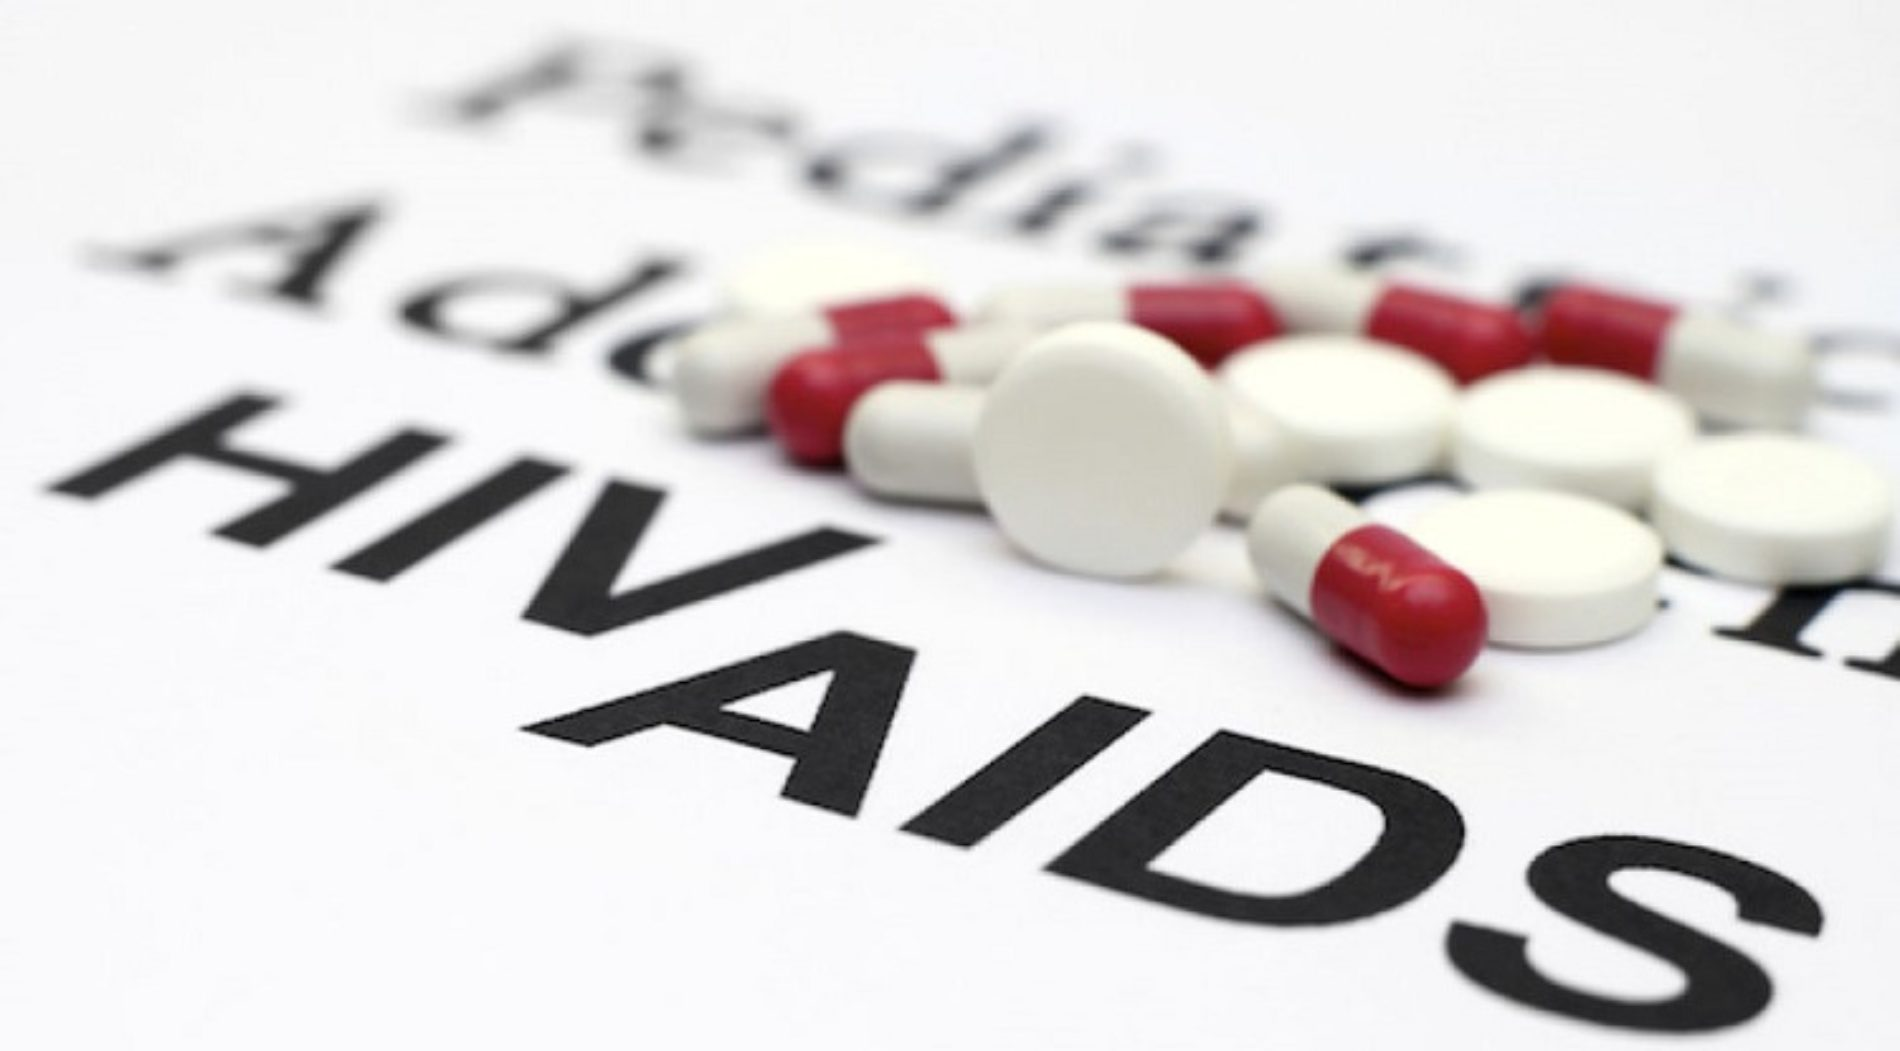 Scientists testing HIV cure report 'remarkable' progress after patient breakthrough